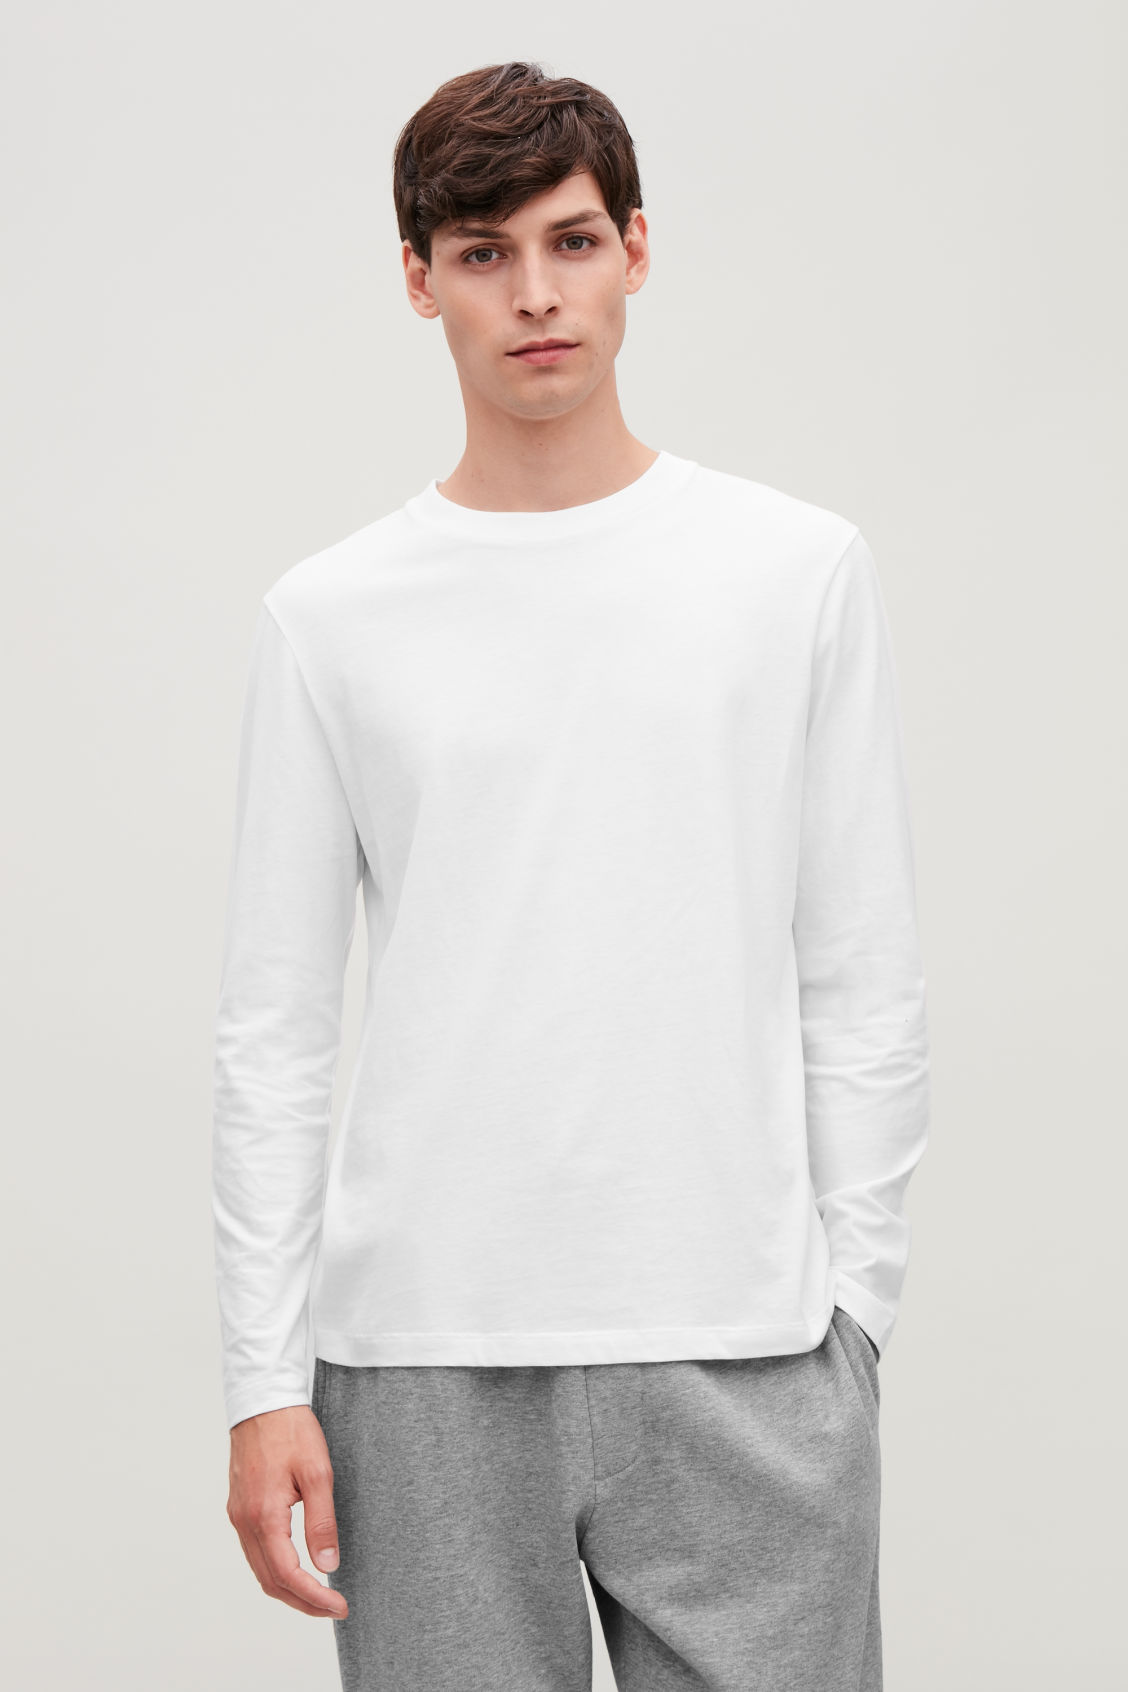 LONG-SLEEVED COTTON T-SHIRT - White - Long-sleeve T-shirts ...